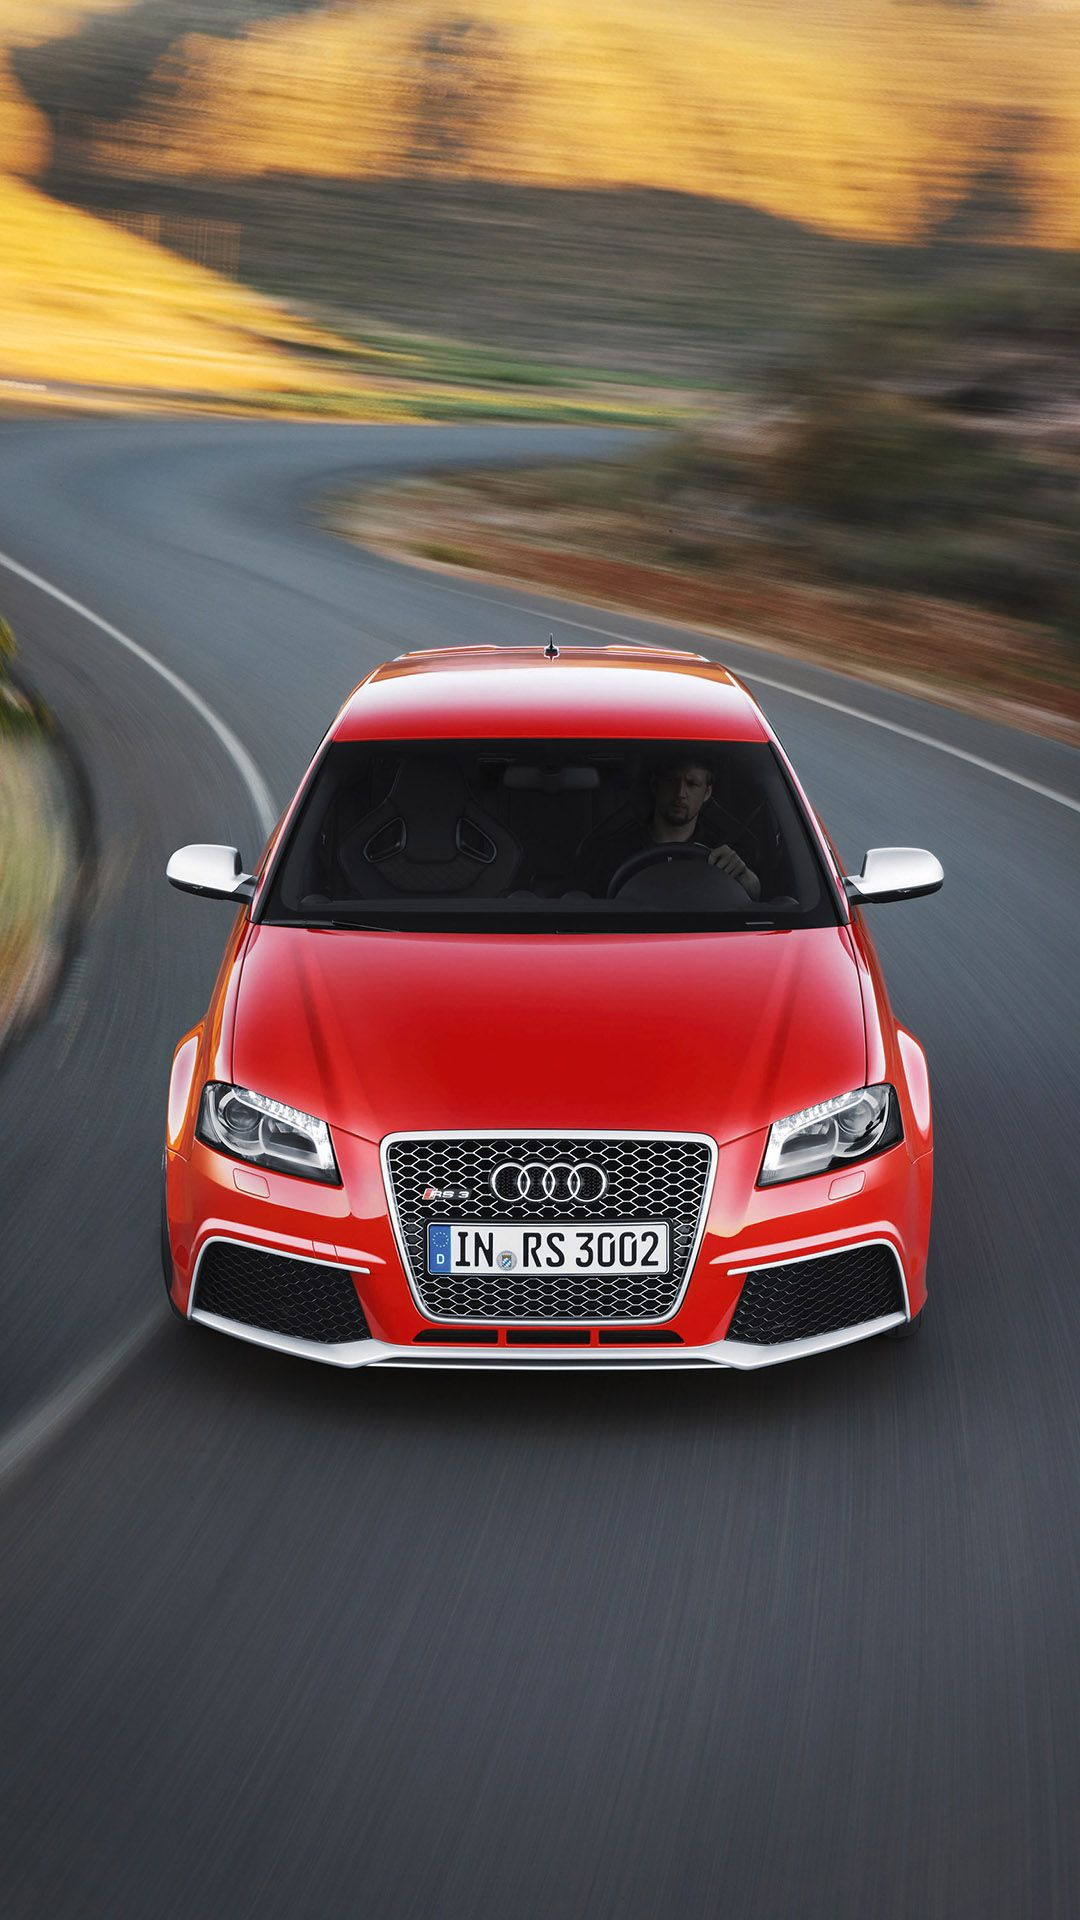 Audi Rs 3 Sportback Htc One Wallpaper Best Htc One Wallpapers Free And Easy To Download Audi Rs Luxury Cars Audi Audi Rs3